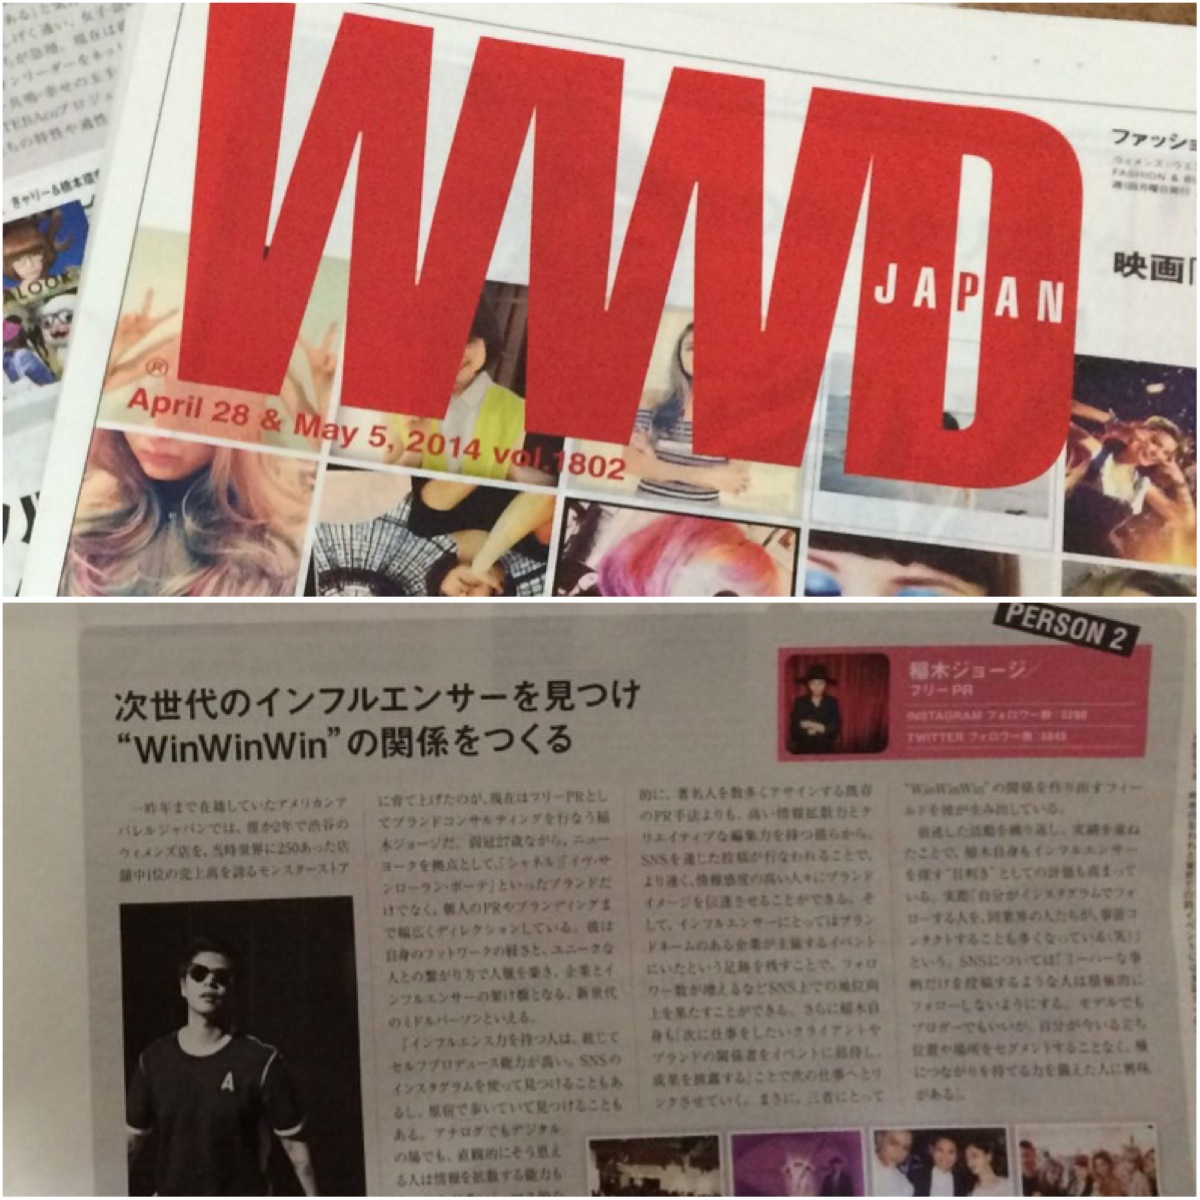 Featured by WWD Japan in April, 2014 as the most influential digital PR